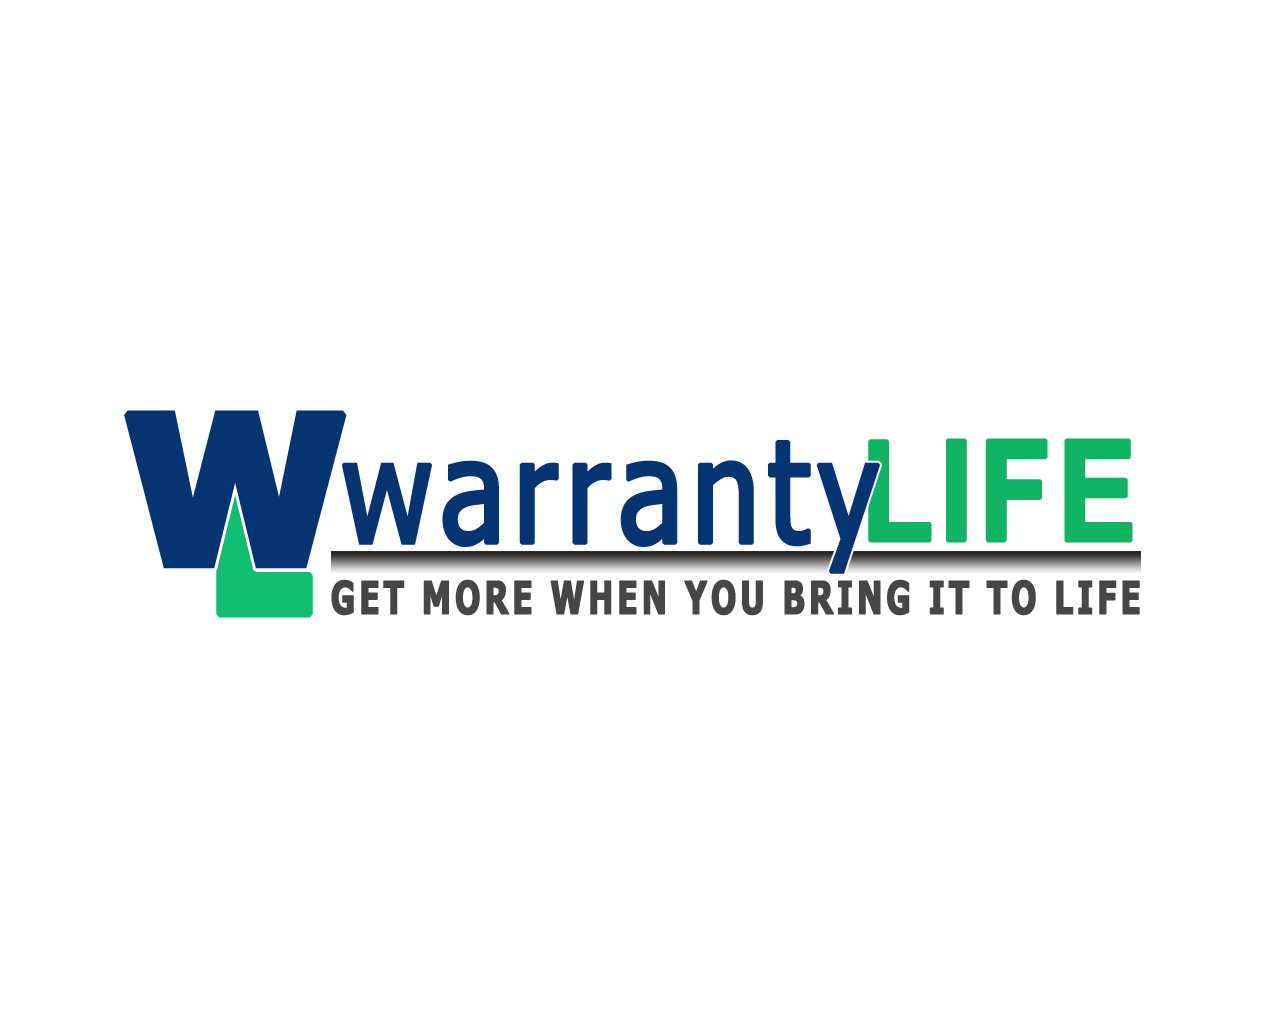 Logo Design by bolshoi_booze - Entry No. 28 in the Logo Design Contest WarrantyLife Logo Design.